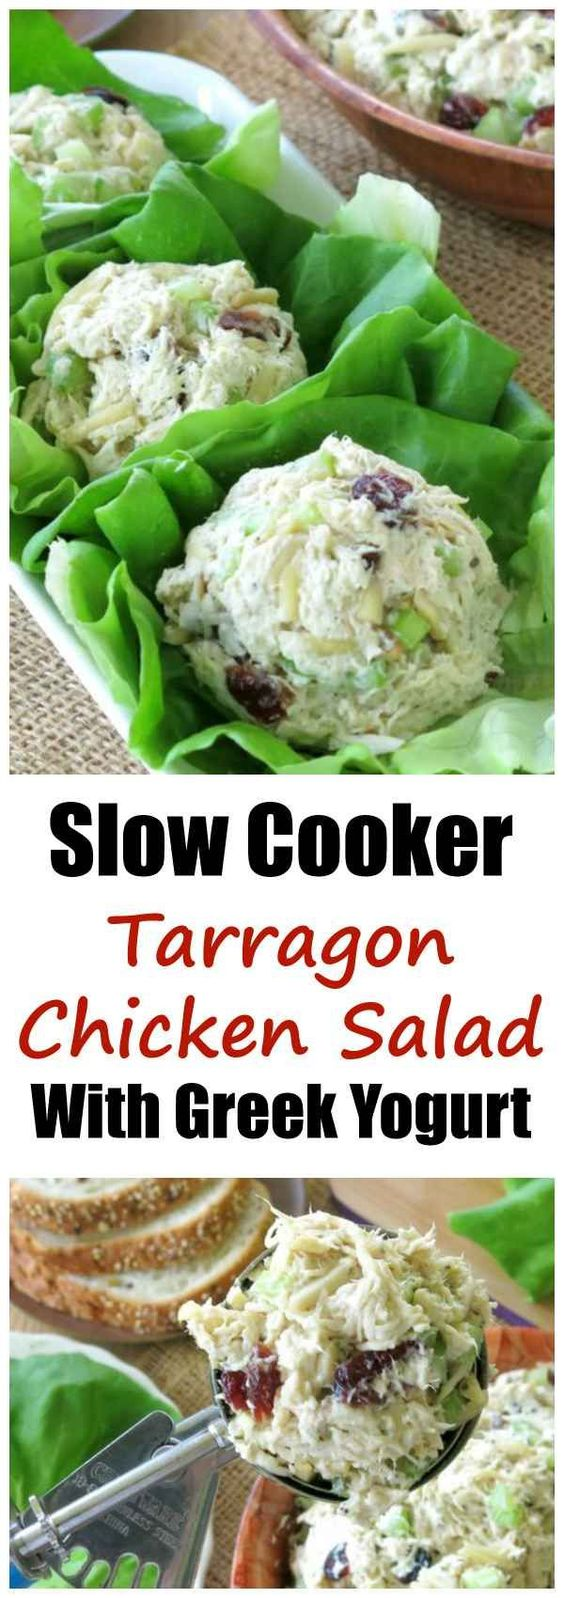 Slow Cooker Tarragon Chicken Salad